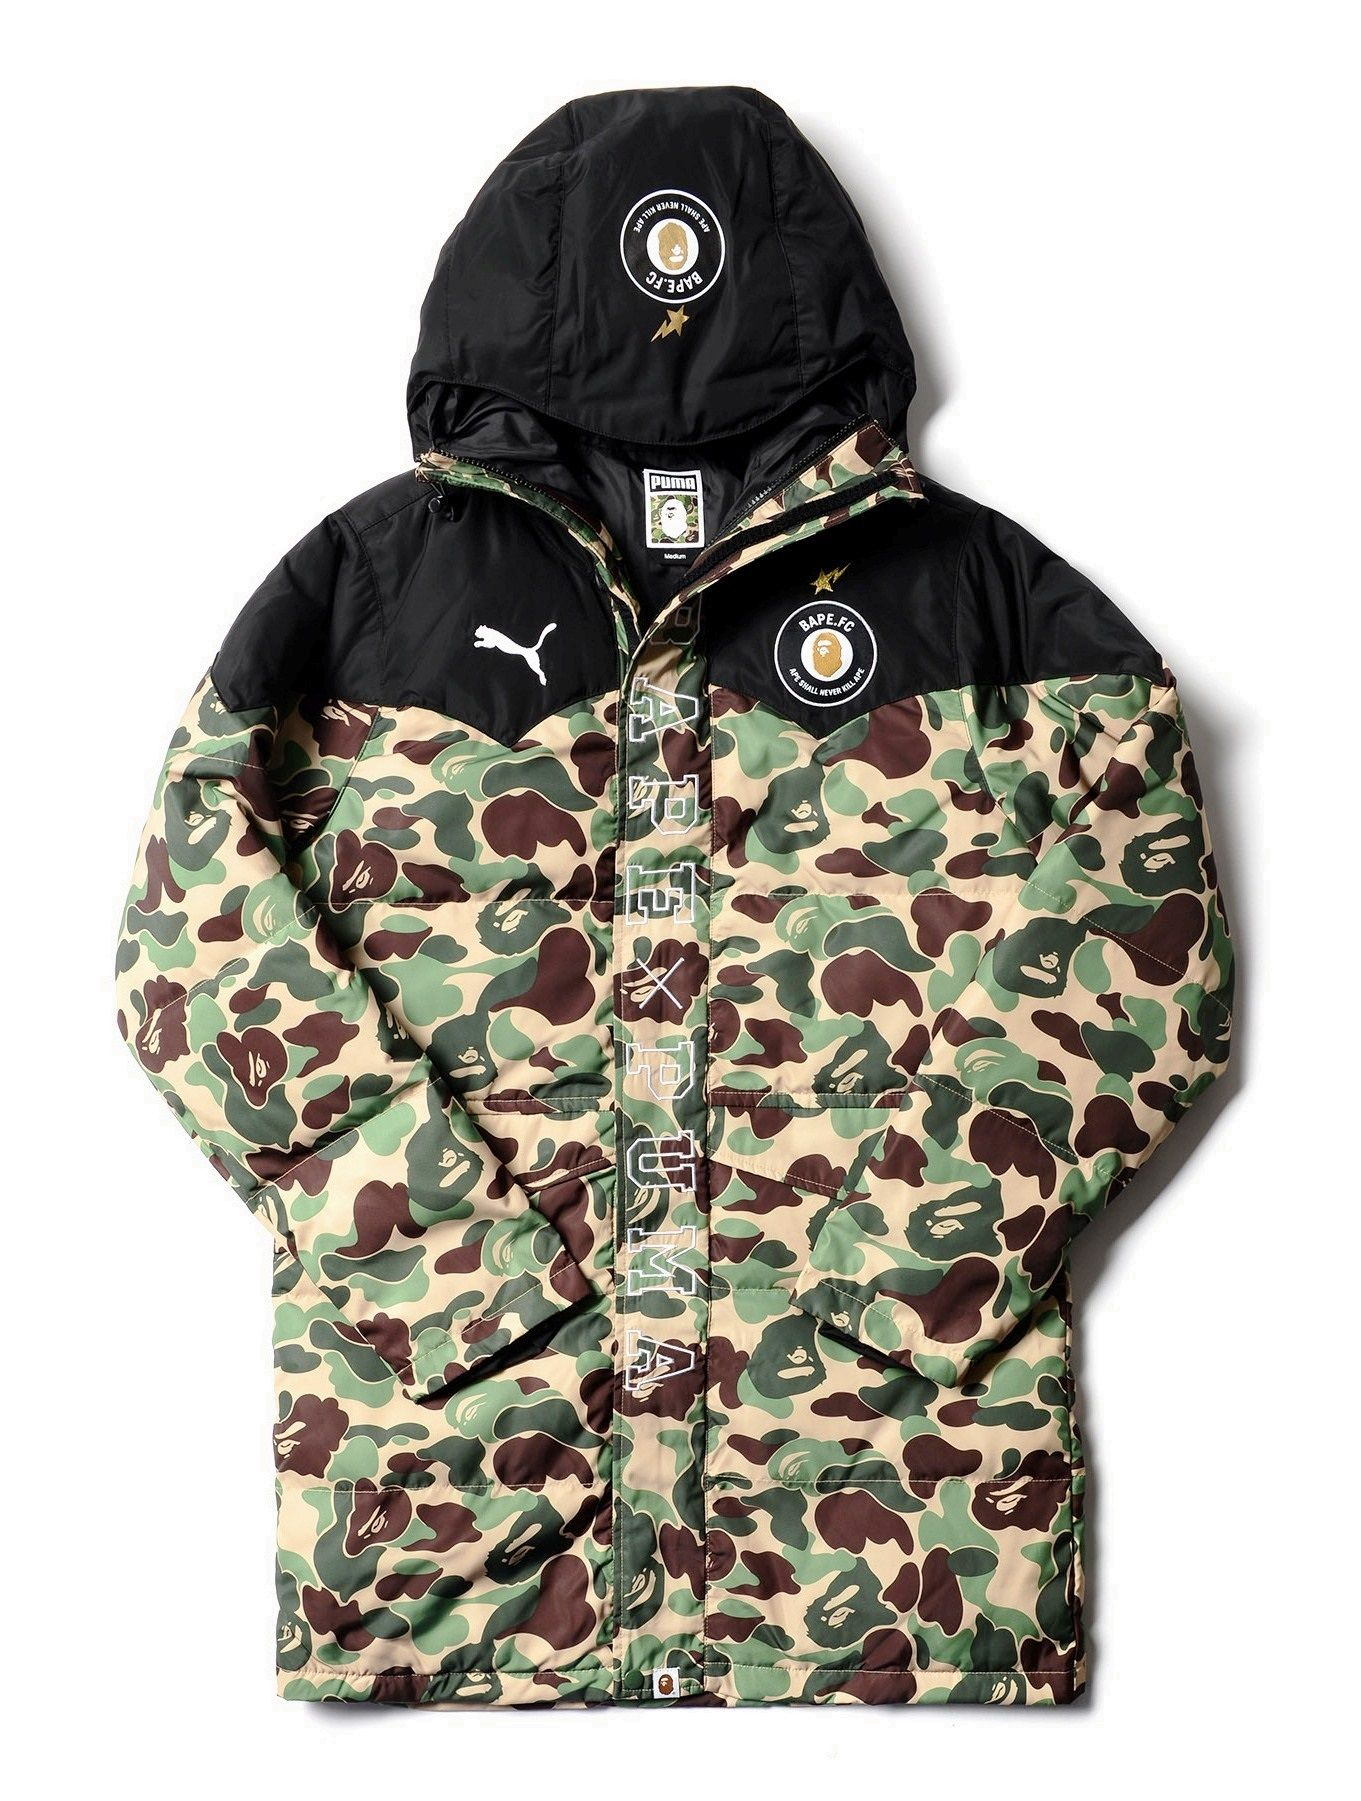 5cfbd1a9feac85 BAPE X Puma Long Camo Jacket Military Men s and Women s Parka A Bathing Ape  Camouflage Coat